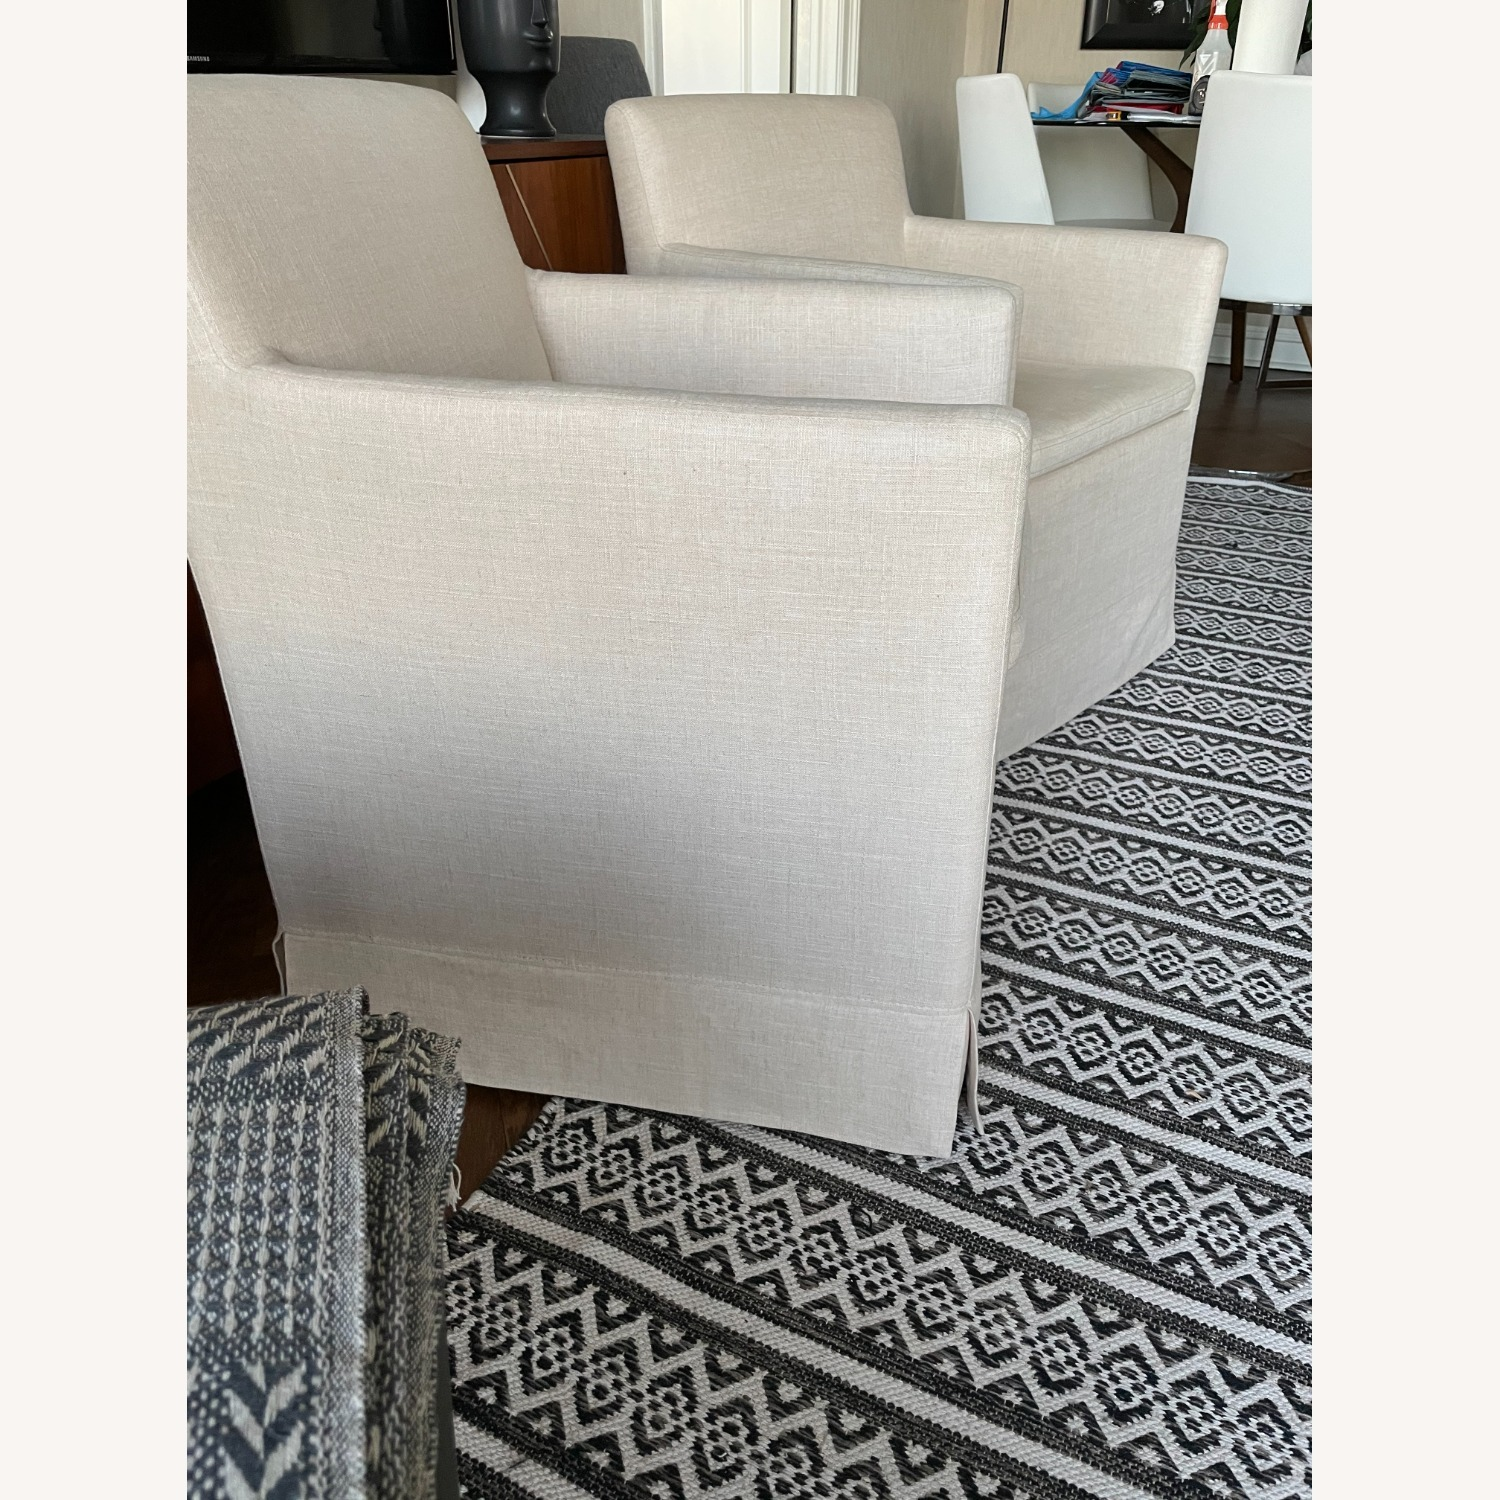 Pair of Linen Colored Fabric Chairs - image-4